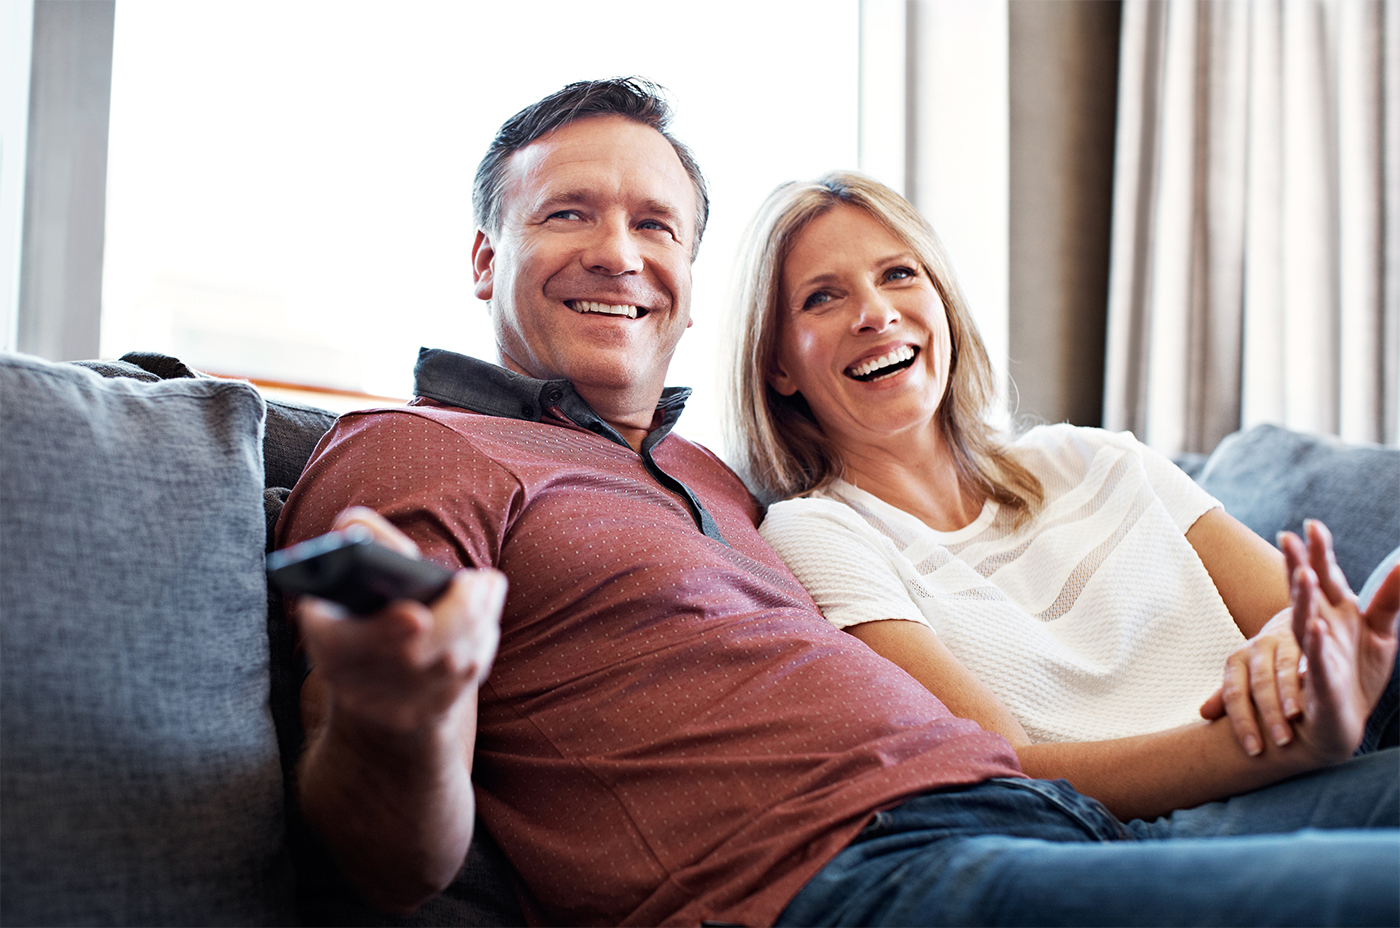 couple on couch using tv remote control